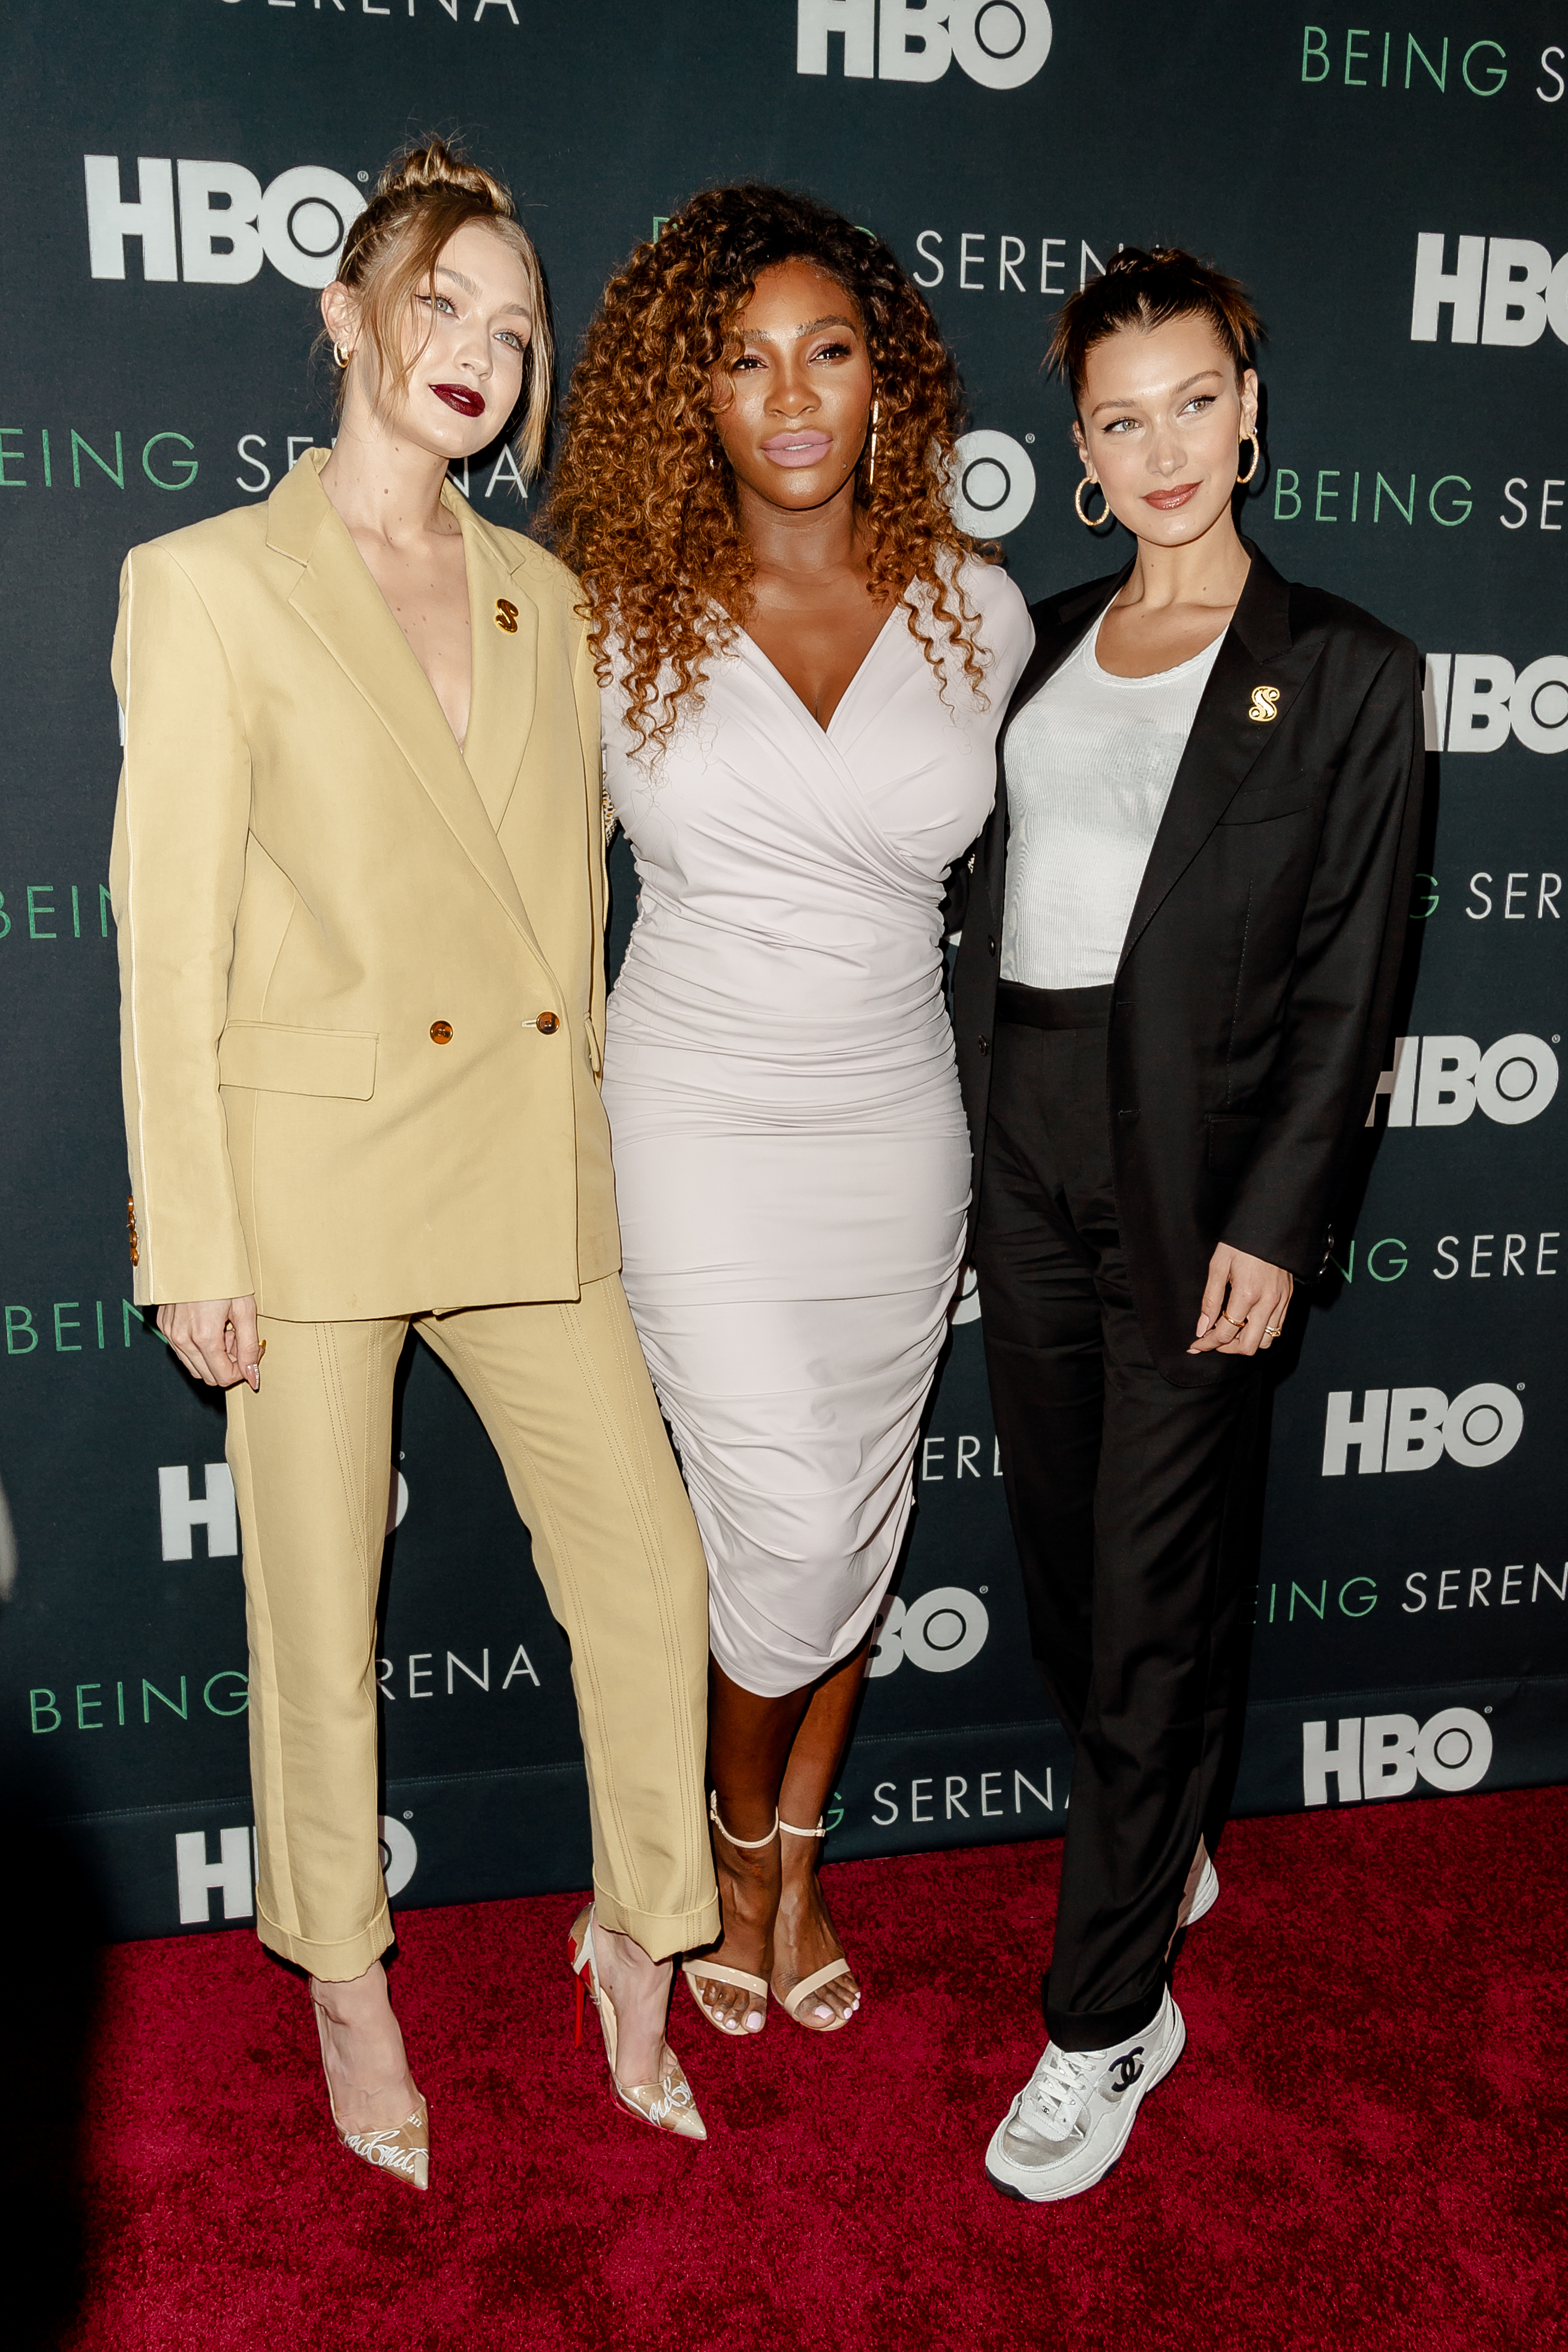 (L to R): Gigi Hadid, Serena Williams, and Bella Hadid are seen at arrivals for the New York premiere of the HBO documentary BEING SERENA at Time Warner Center in New York, NY, USA on April 25, 2018. (Photo by Albin Lohr-Jones/Sipa USA)